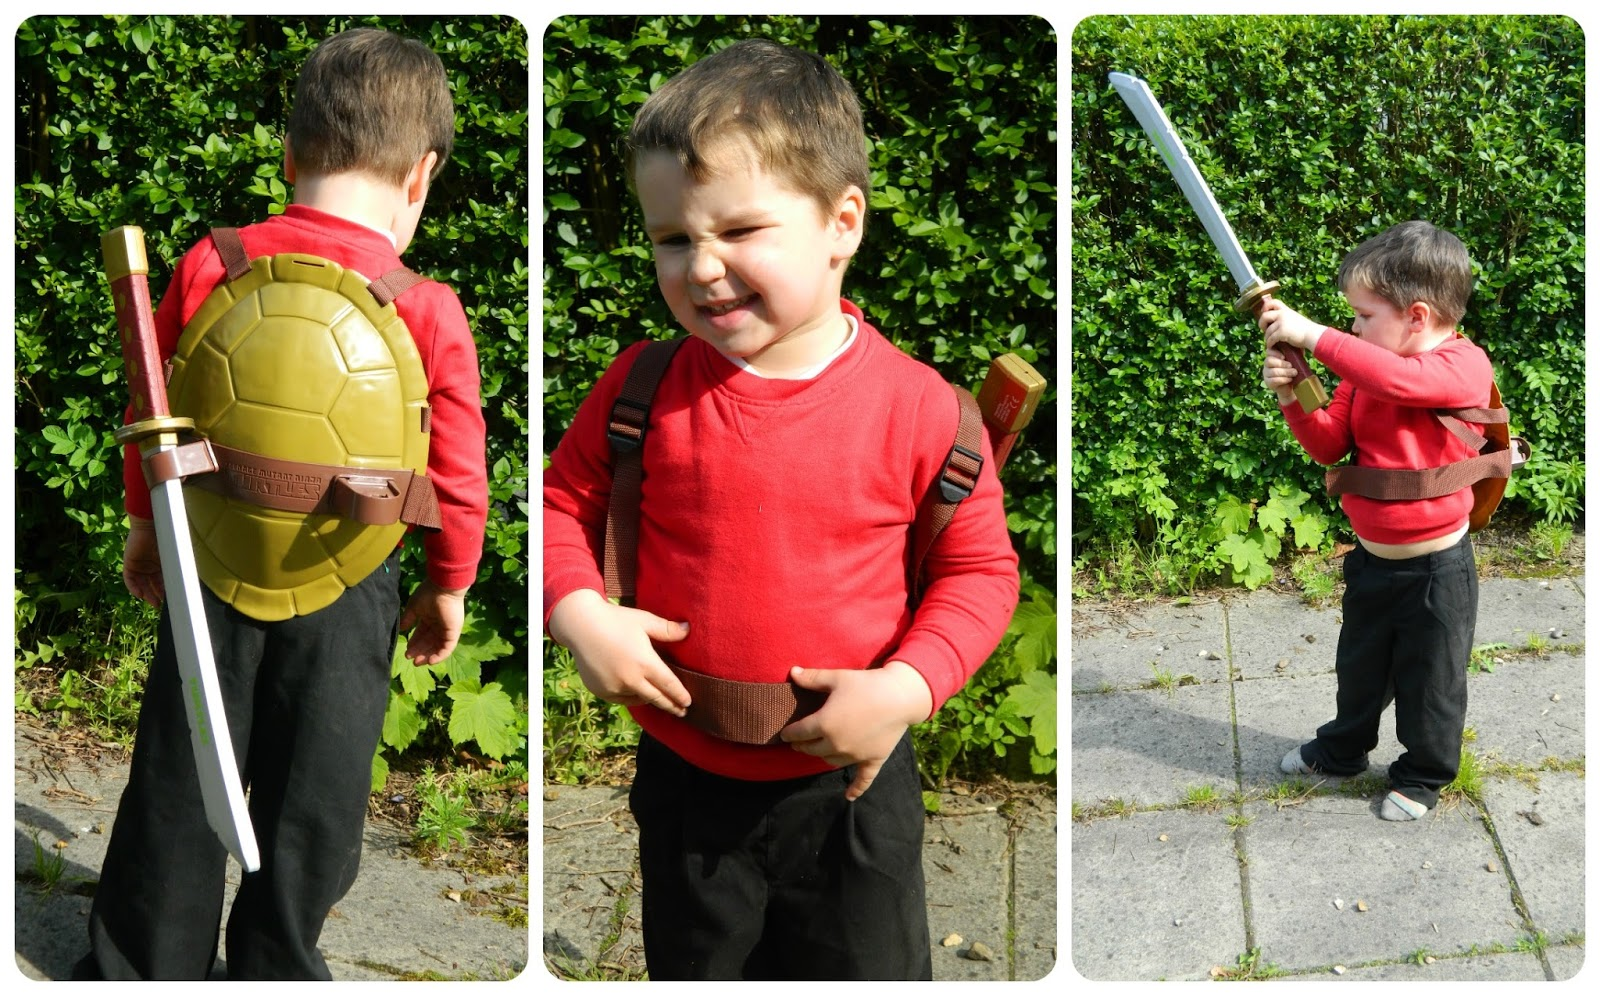 Bud playing with his Teenage Mutant Ninja Turtles Combat Shell and Leonardo Katana Sword